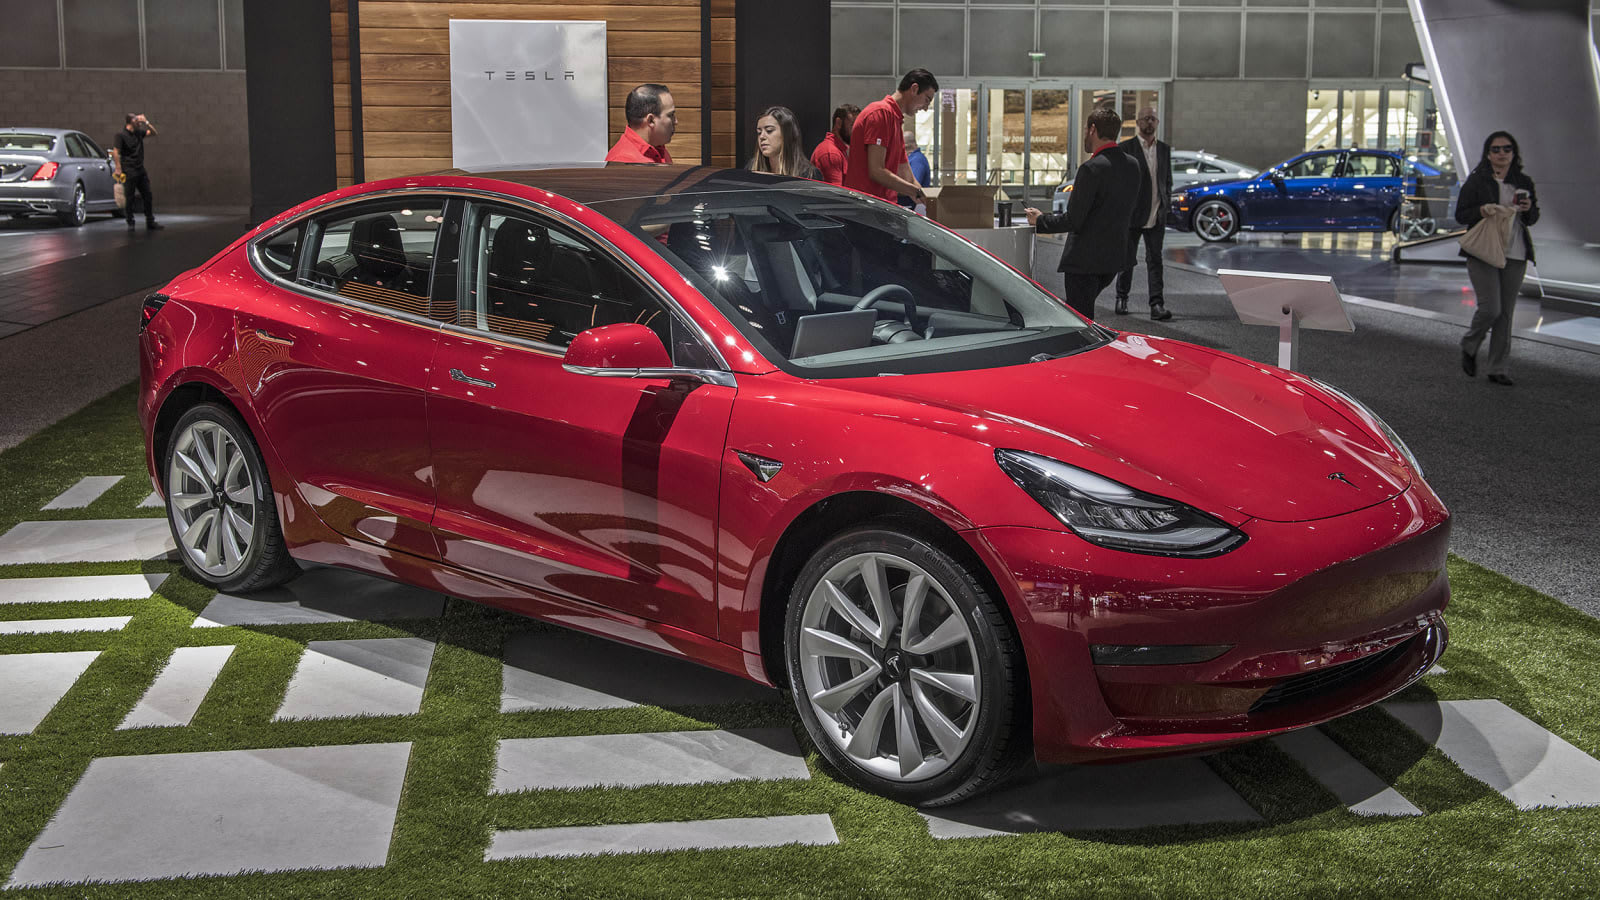 Tesla speeds up delivery times for new Model 3 orders